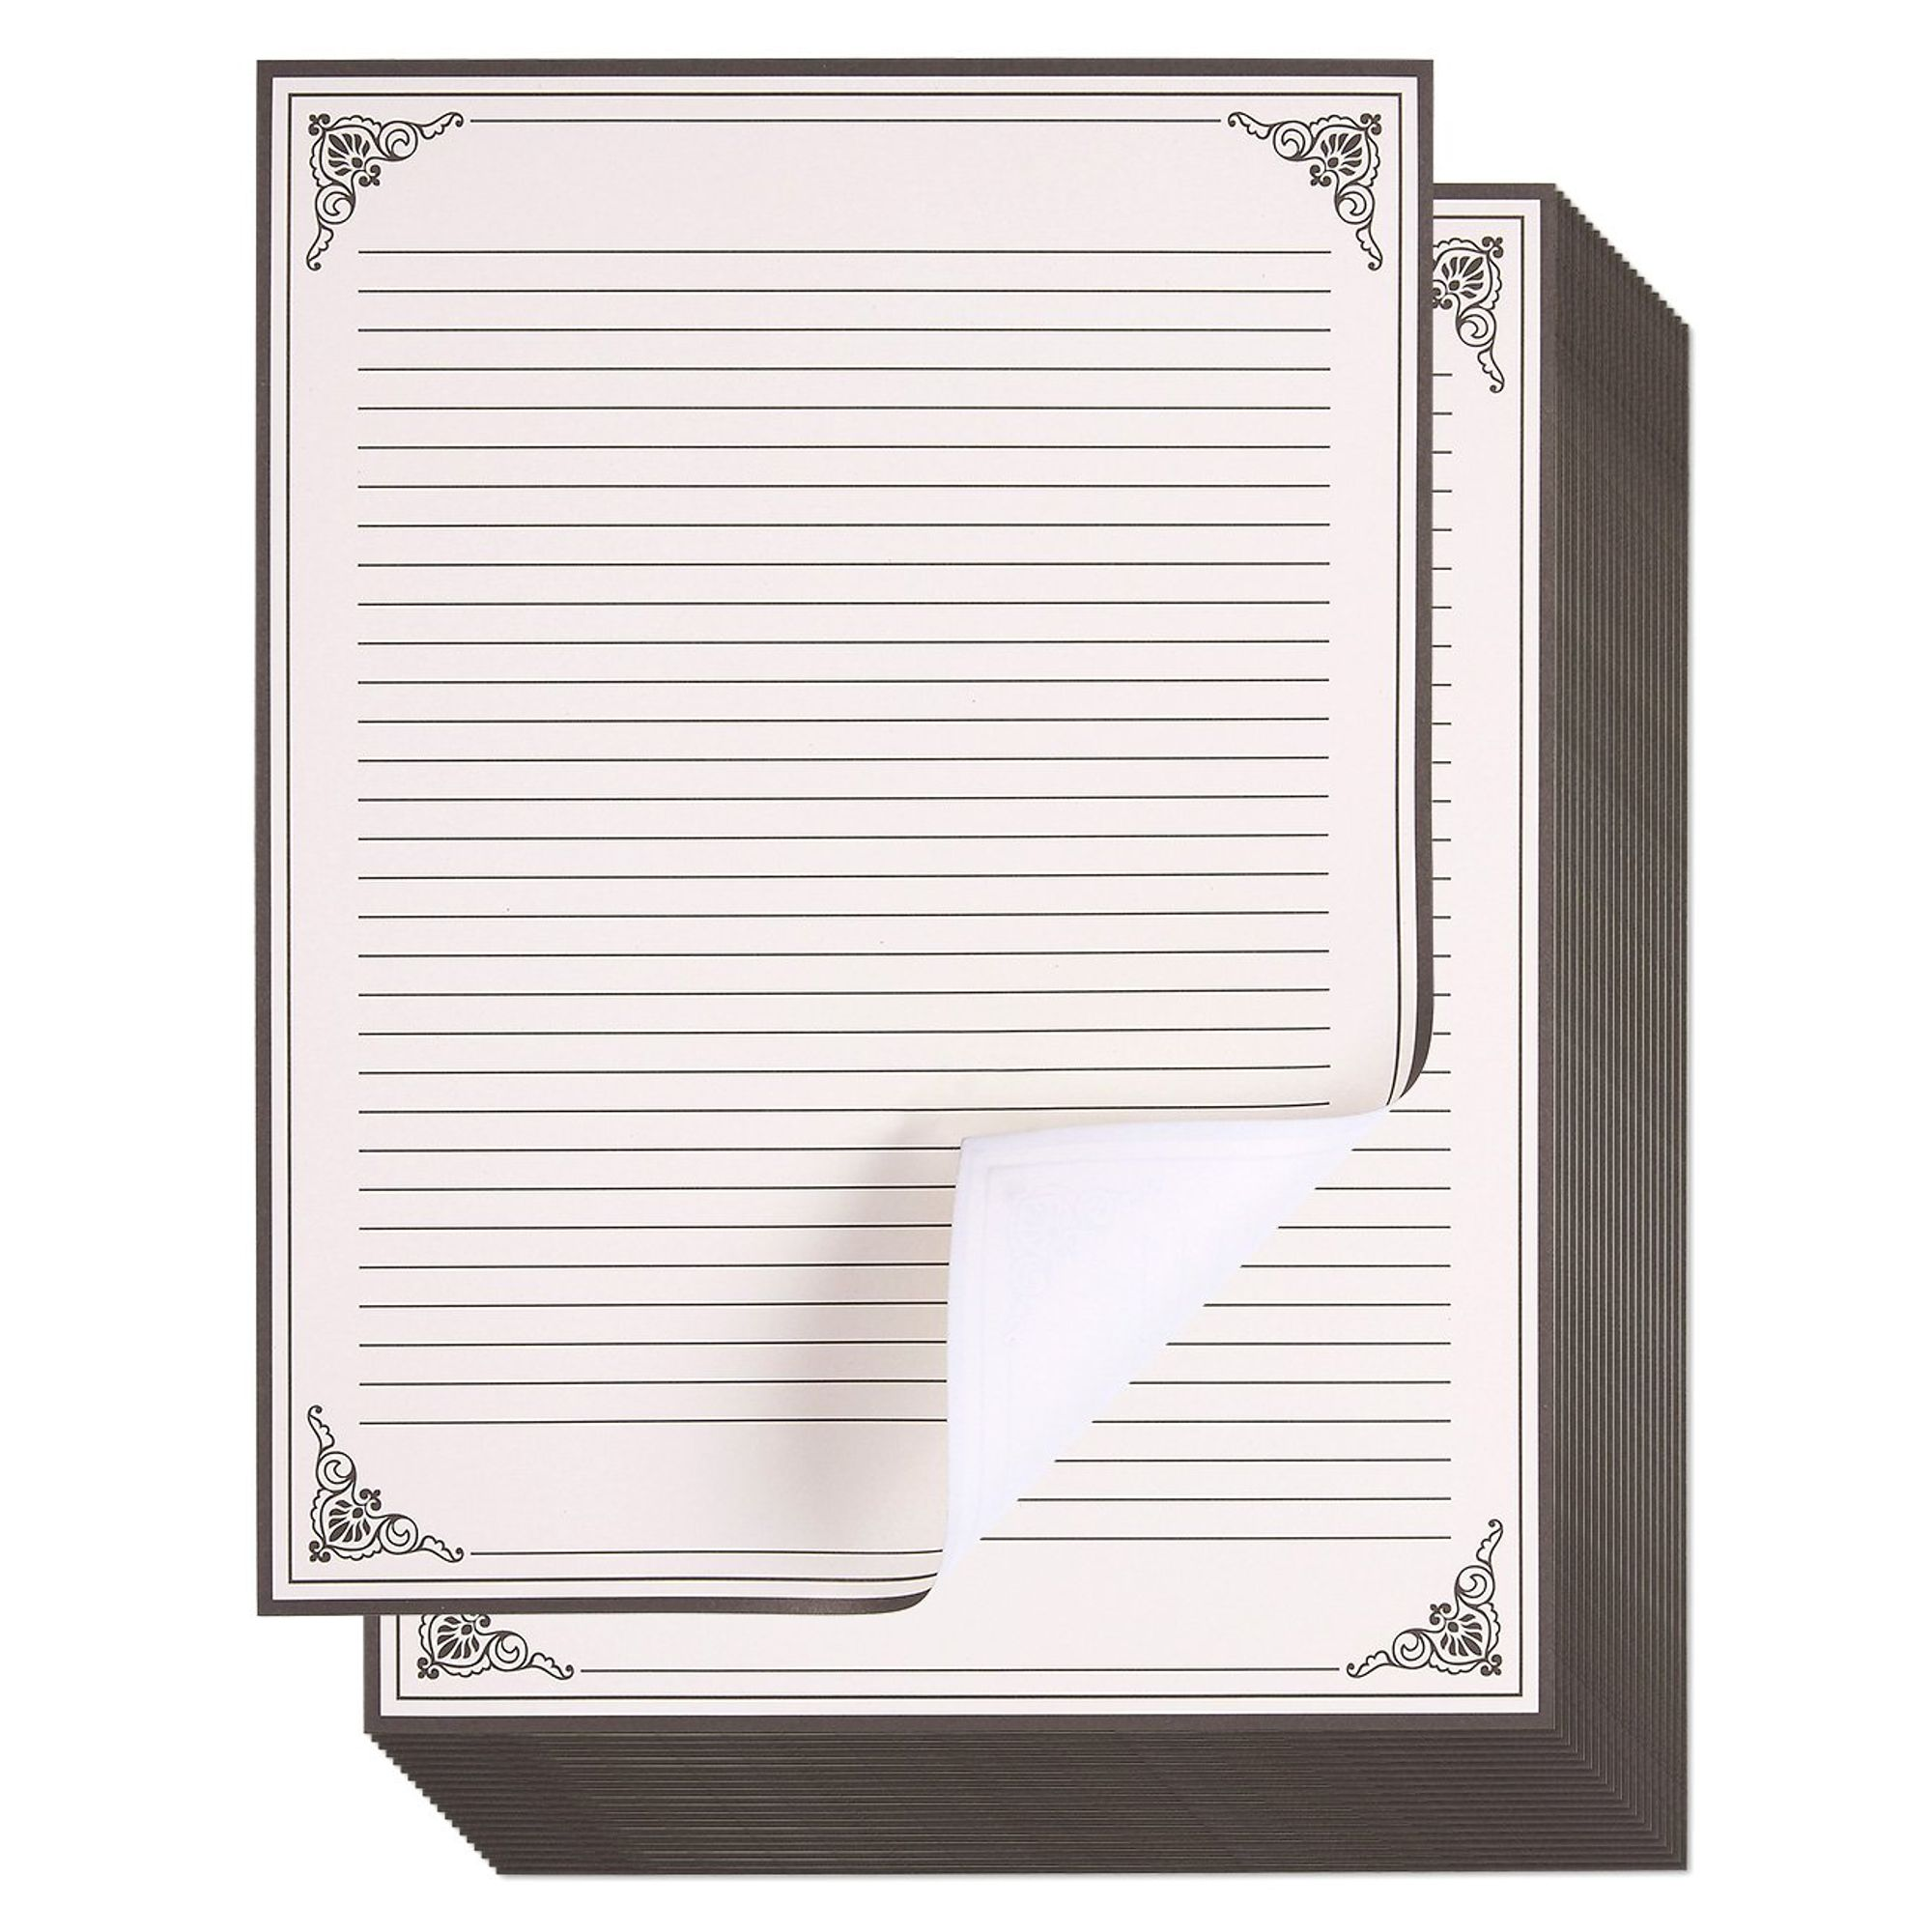 CHRISTMAS WRITING NEWS LETTER STATIONERY PAPER 80 per Pack